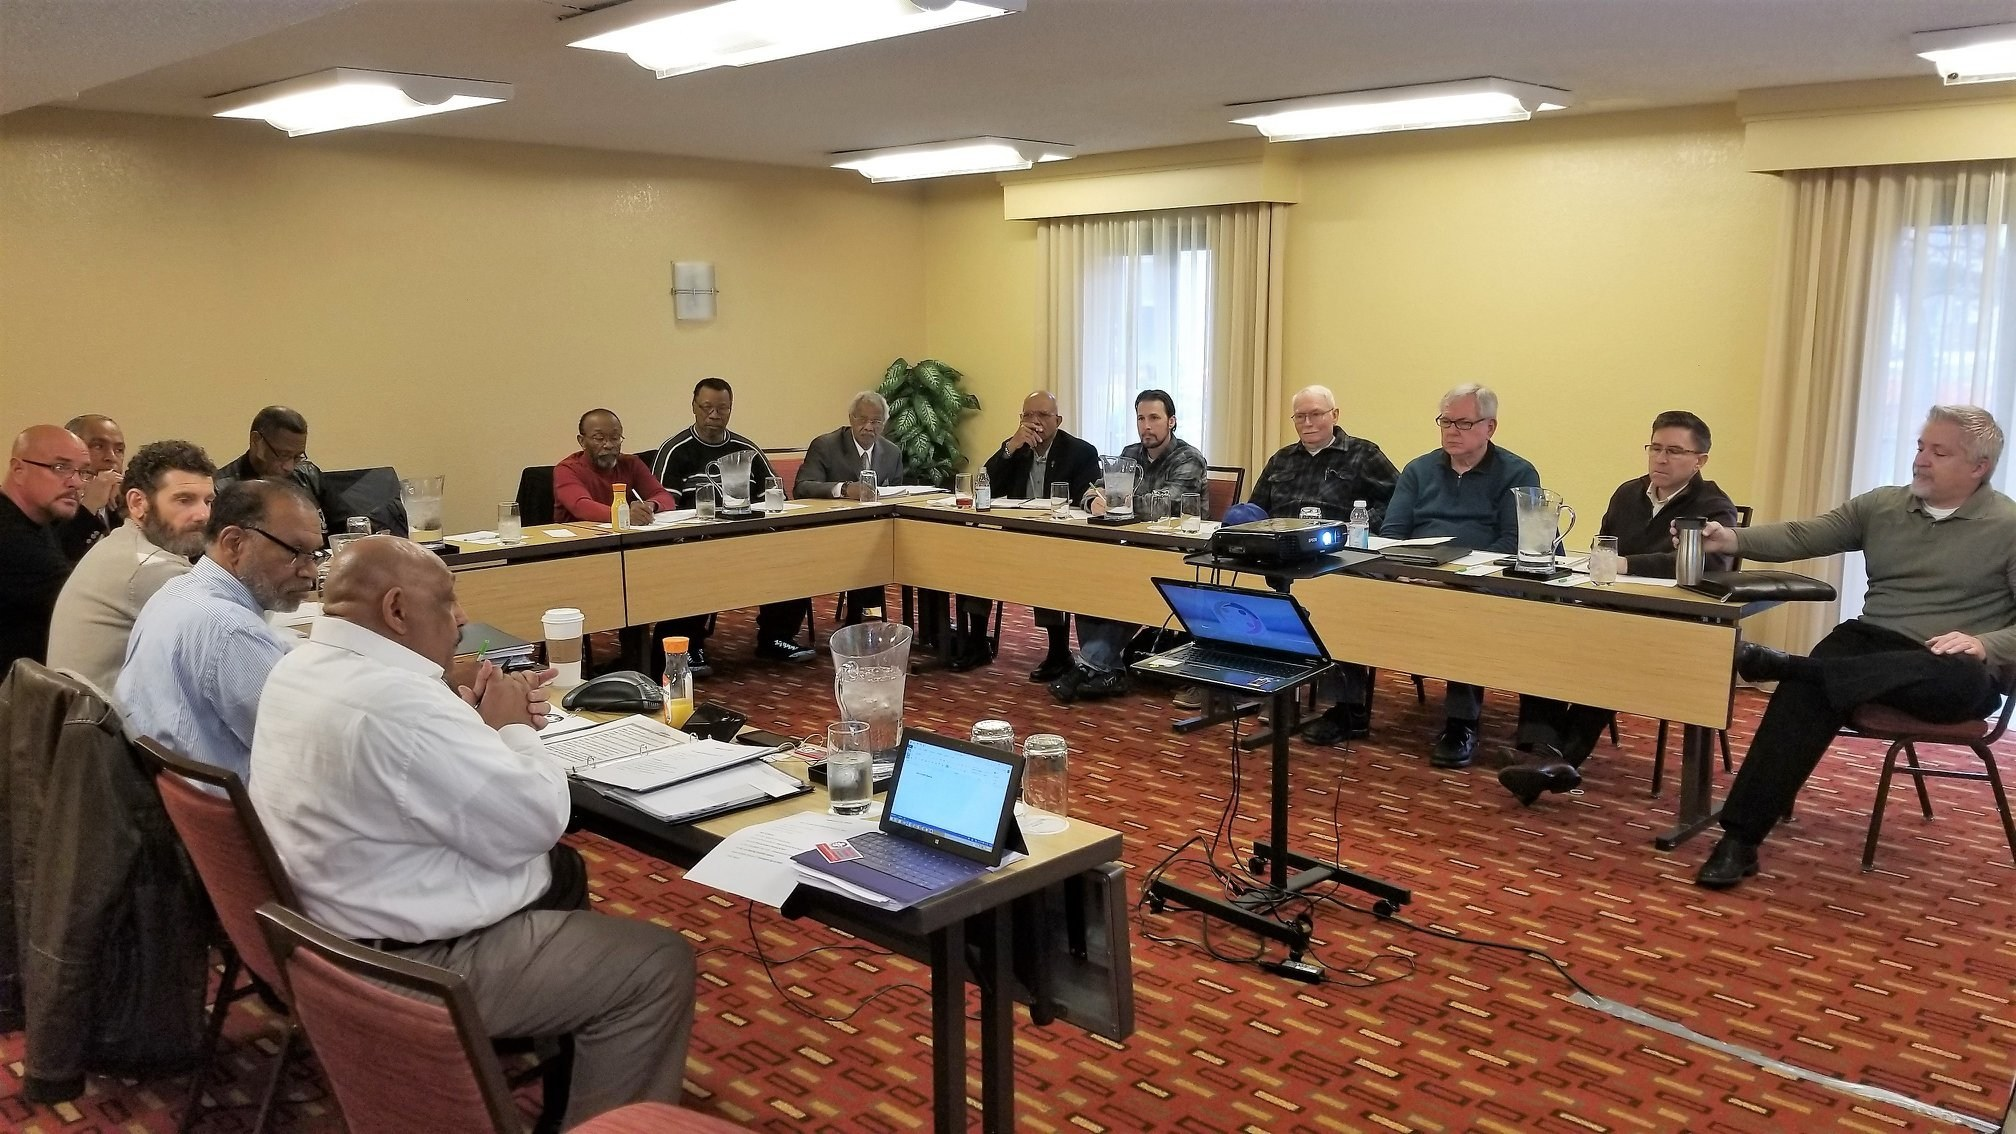 Men's Huddle International Board Meeting. The team is planning for a year packed with lots of activities.